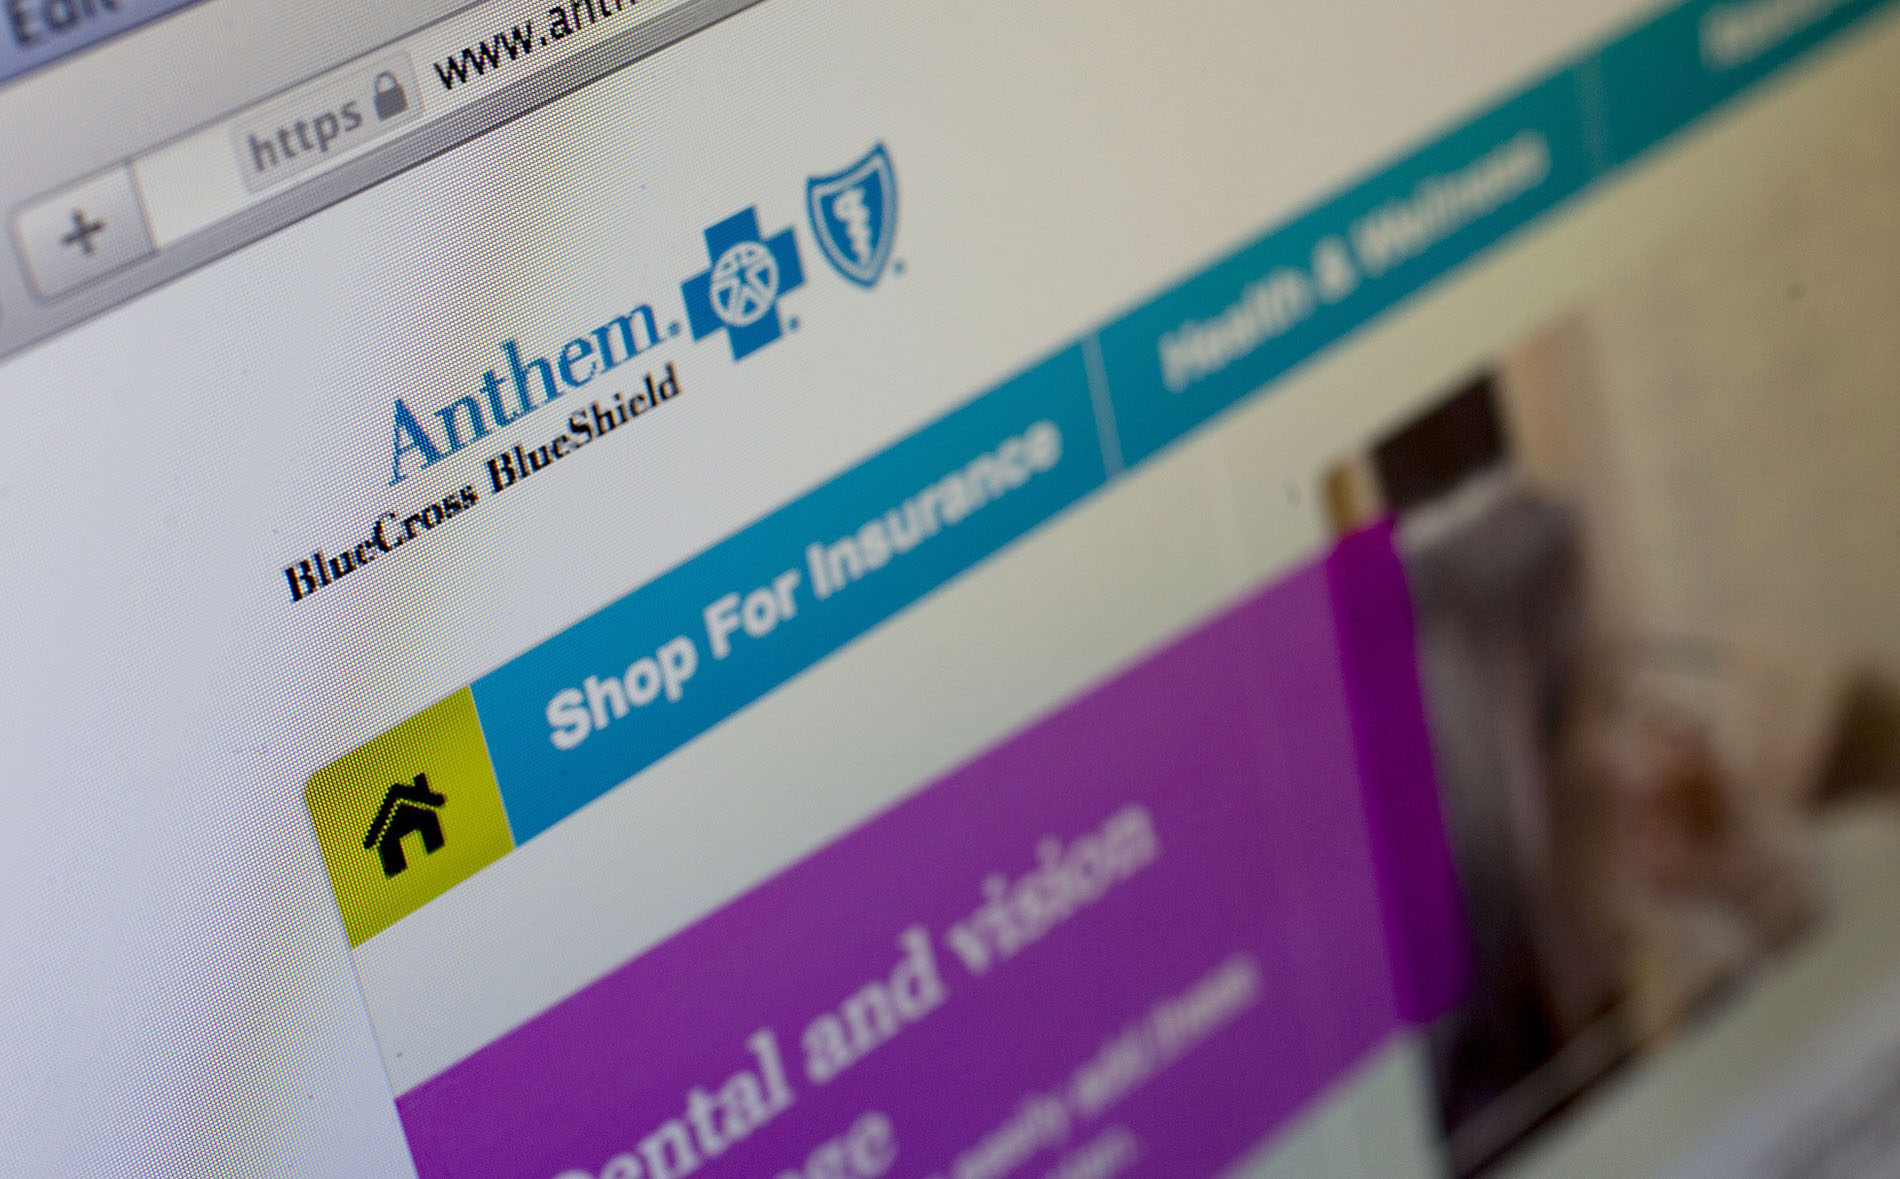 Anthem, Aetna Sued by U.S. Seeking to Block Insurer Mergers